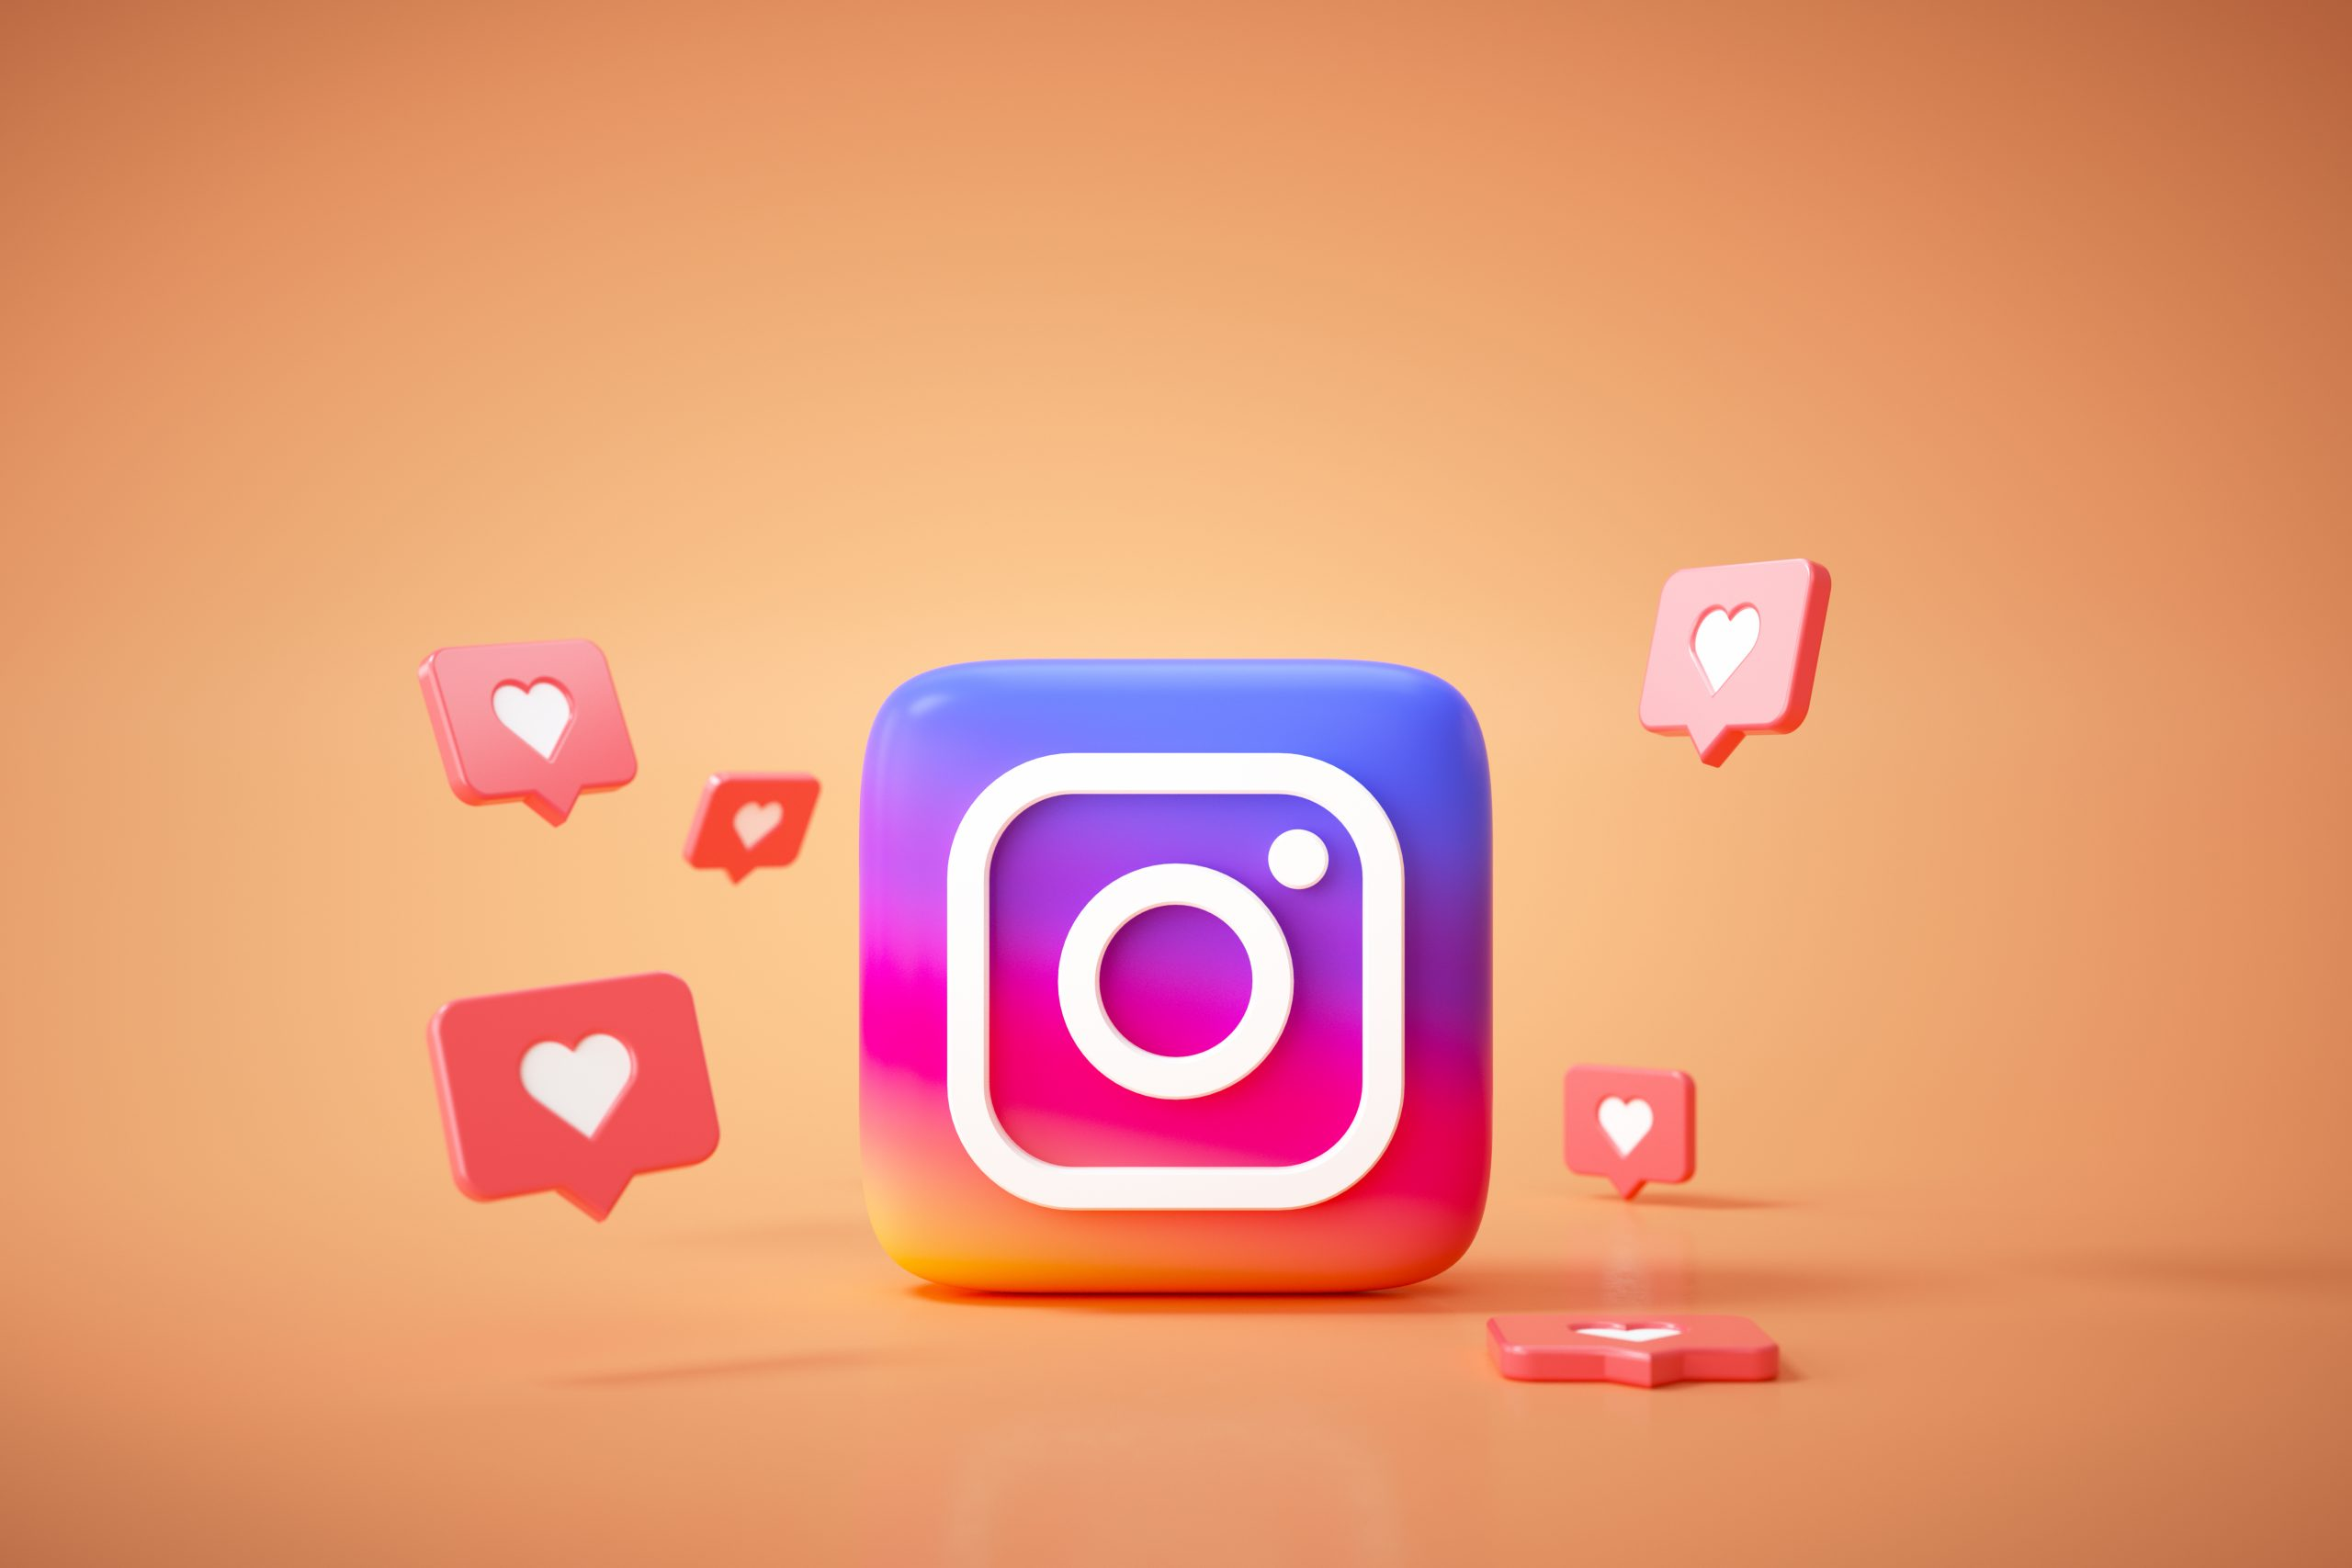 Tips to reflect on while engaging on Instagram